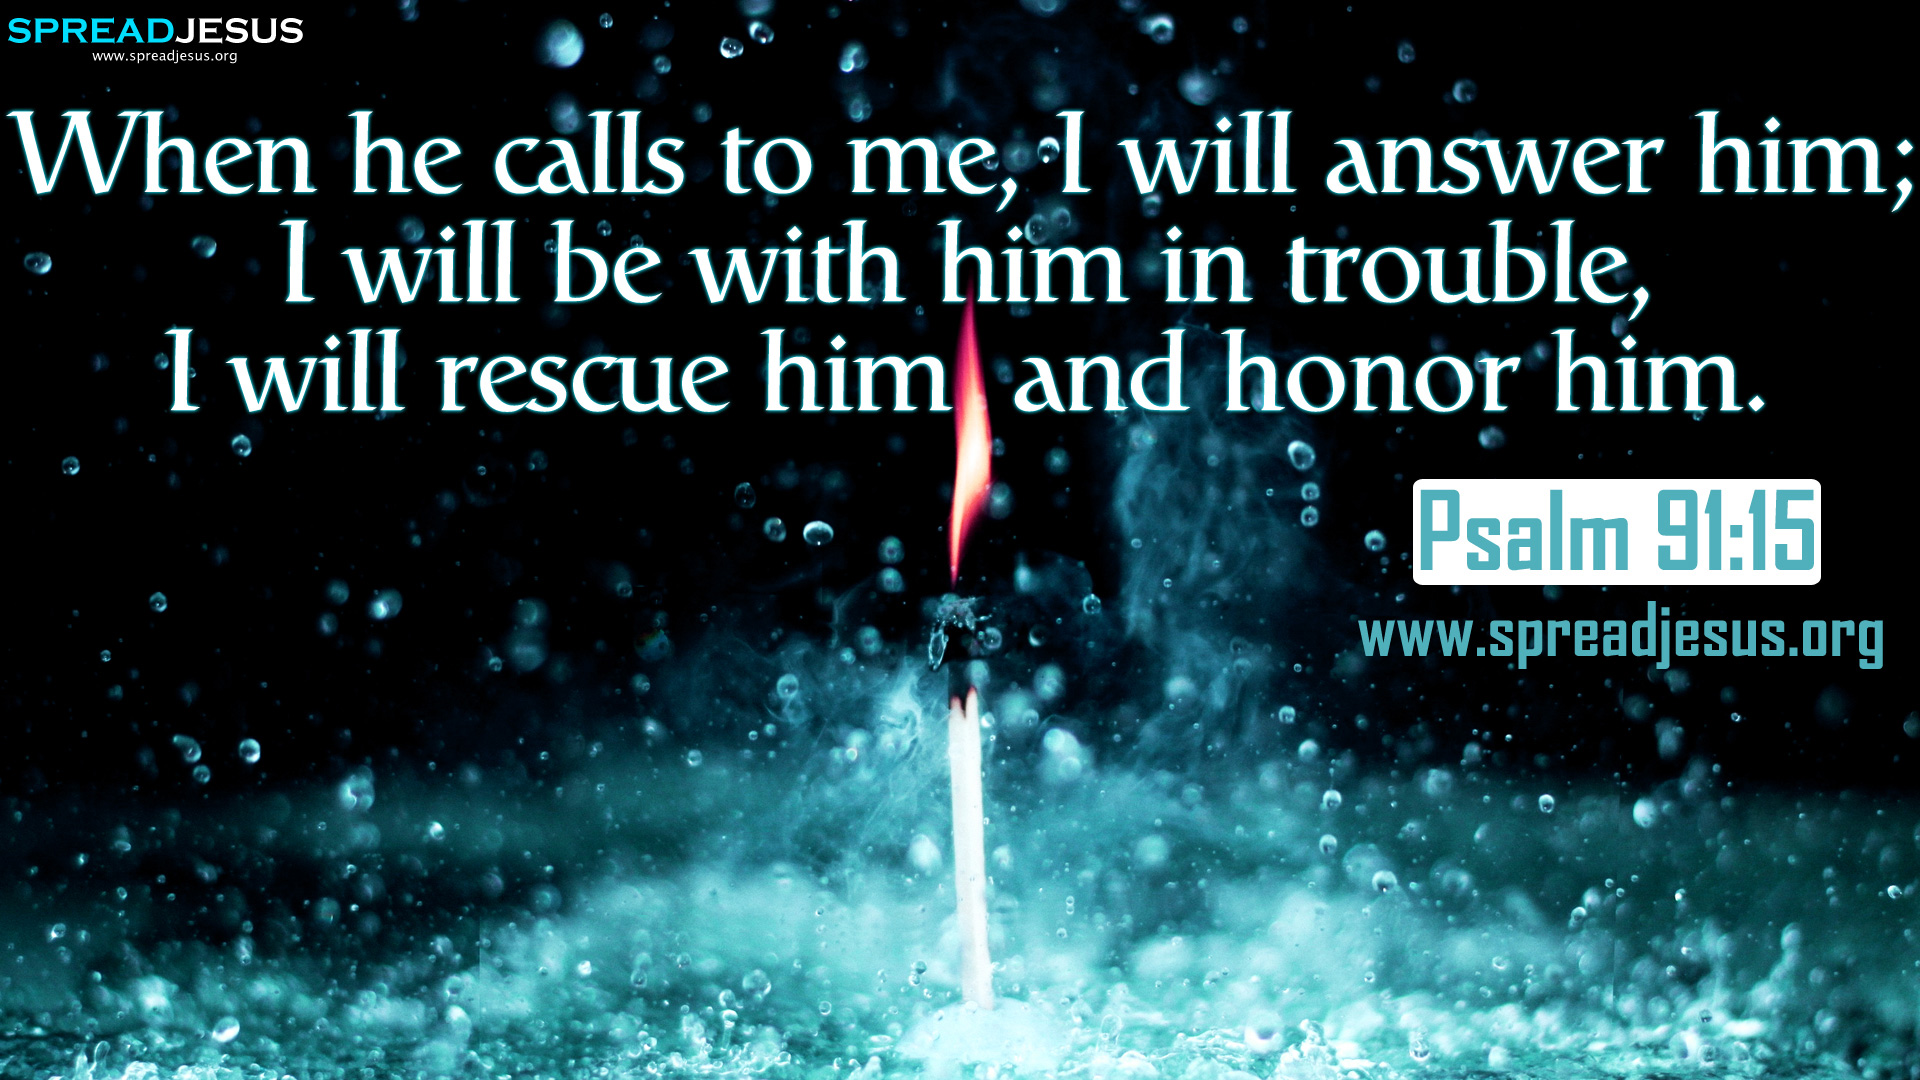 psalm 91 15 bible quotes hd wallpapers free download